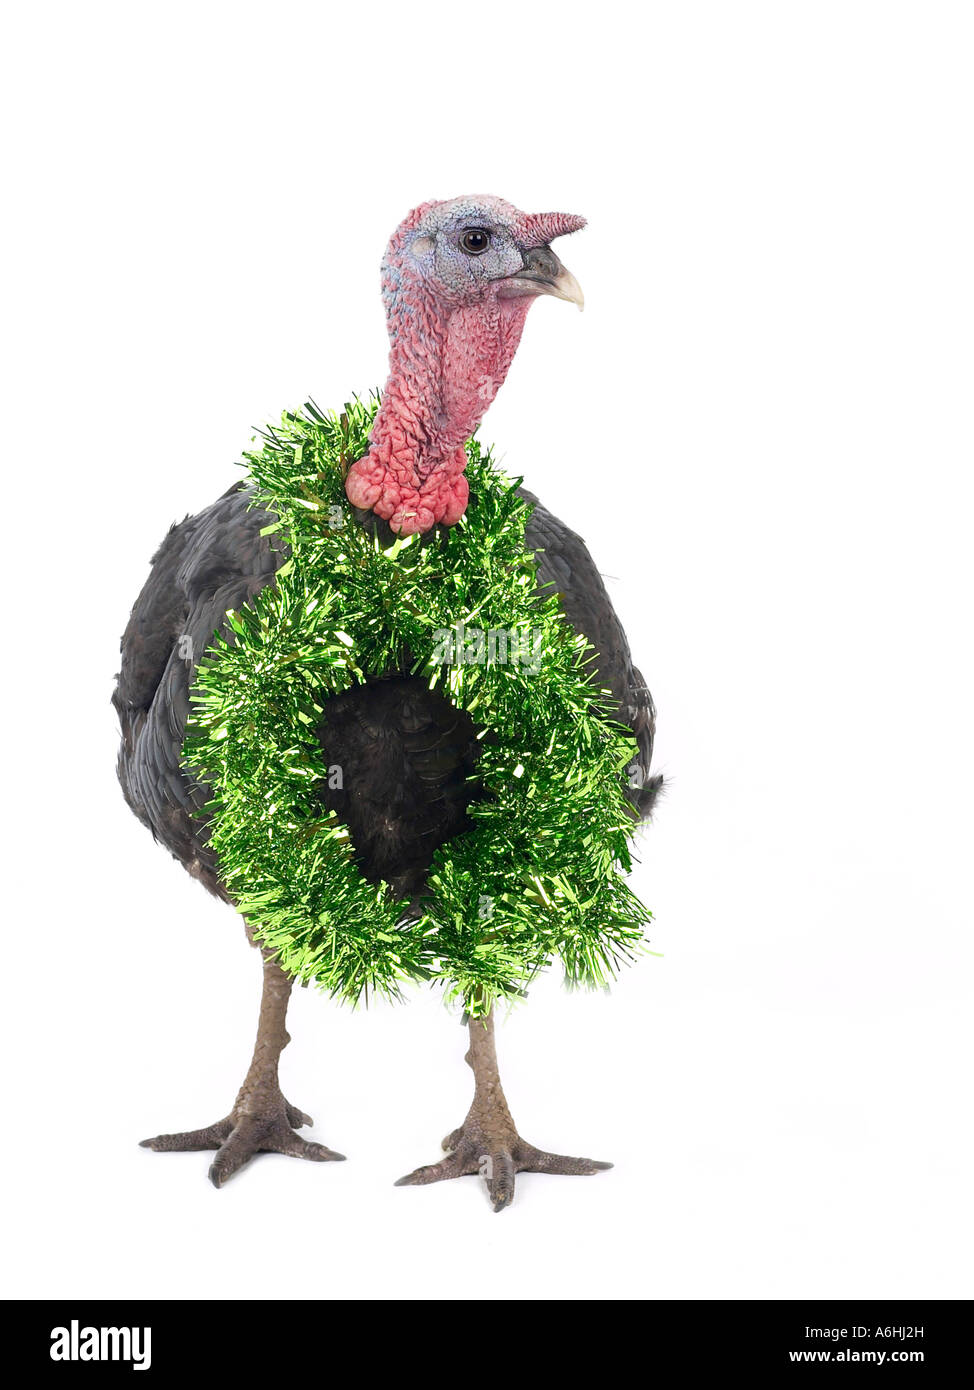 A turkey with tinsel around the neck ready for Christmas. - Stock Image